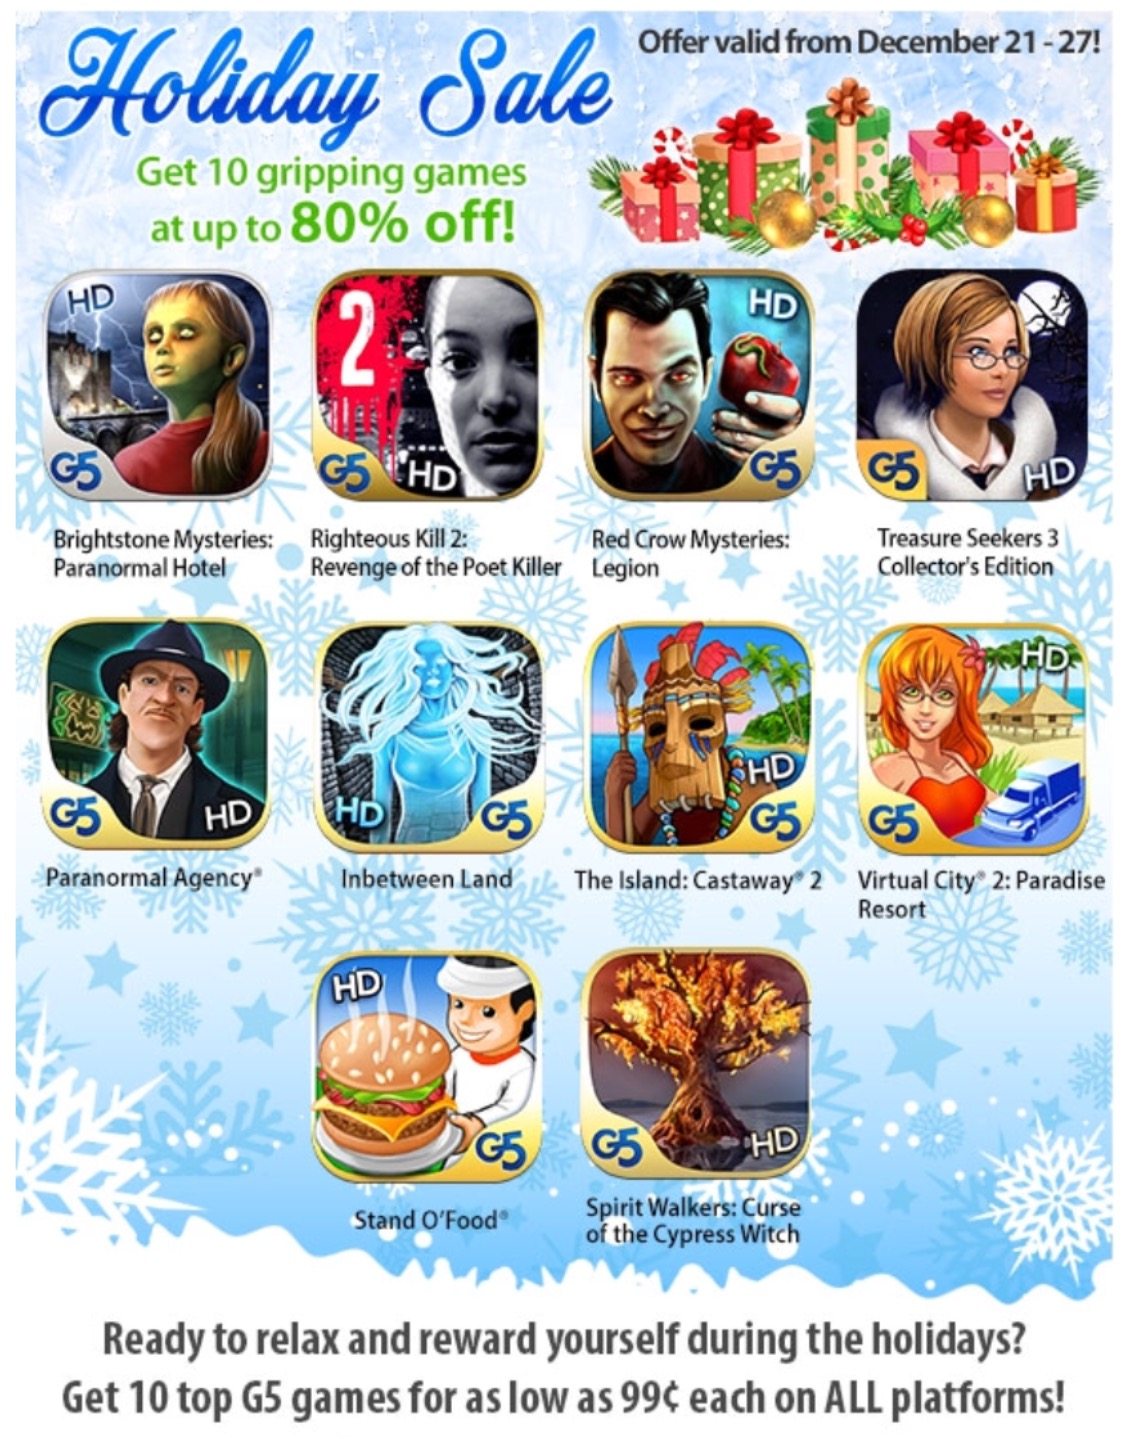 GearDiary G5 Holiday Sale: Get 10 Gripping Games at up to 80% off on All Platforms!